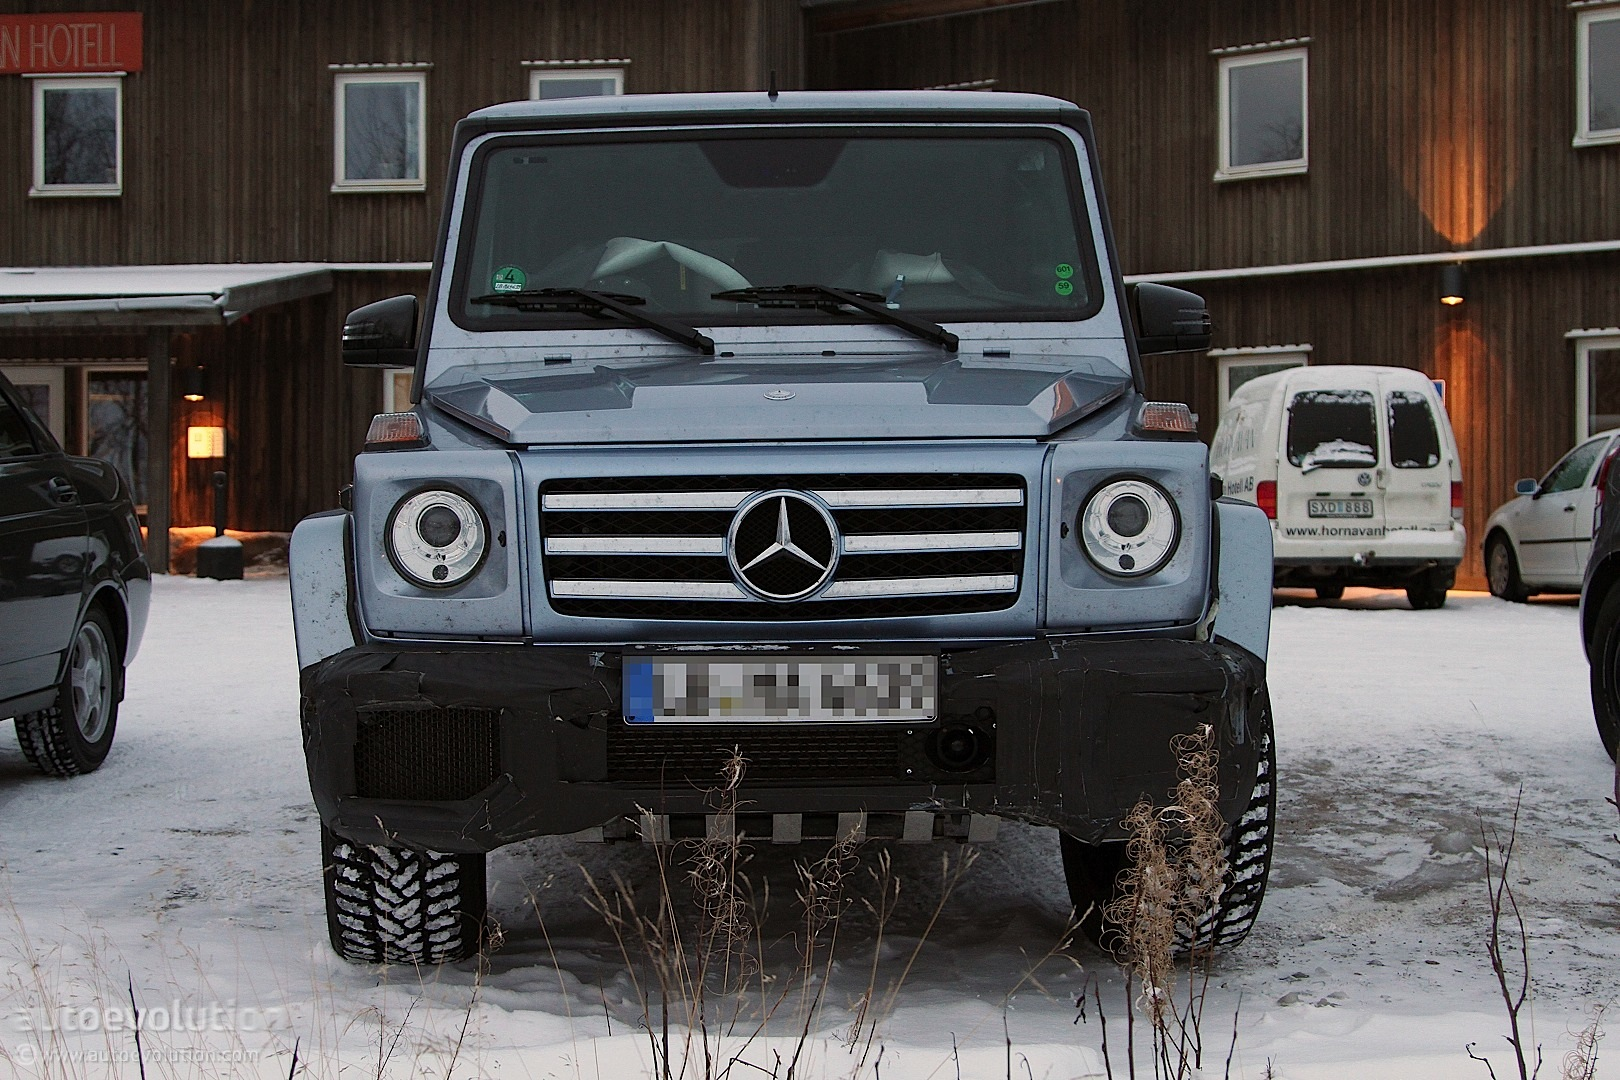 Mercedes benz g63 amg specs and pricing leaked exclusive for G63 mercedes benz price